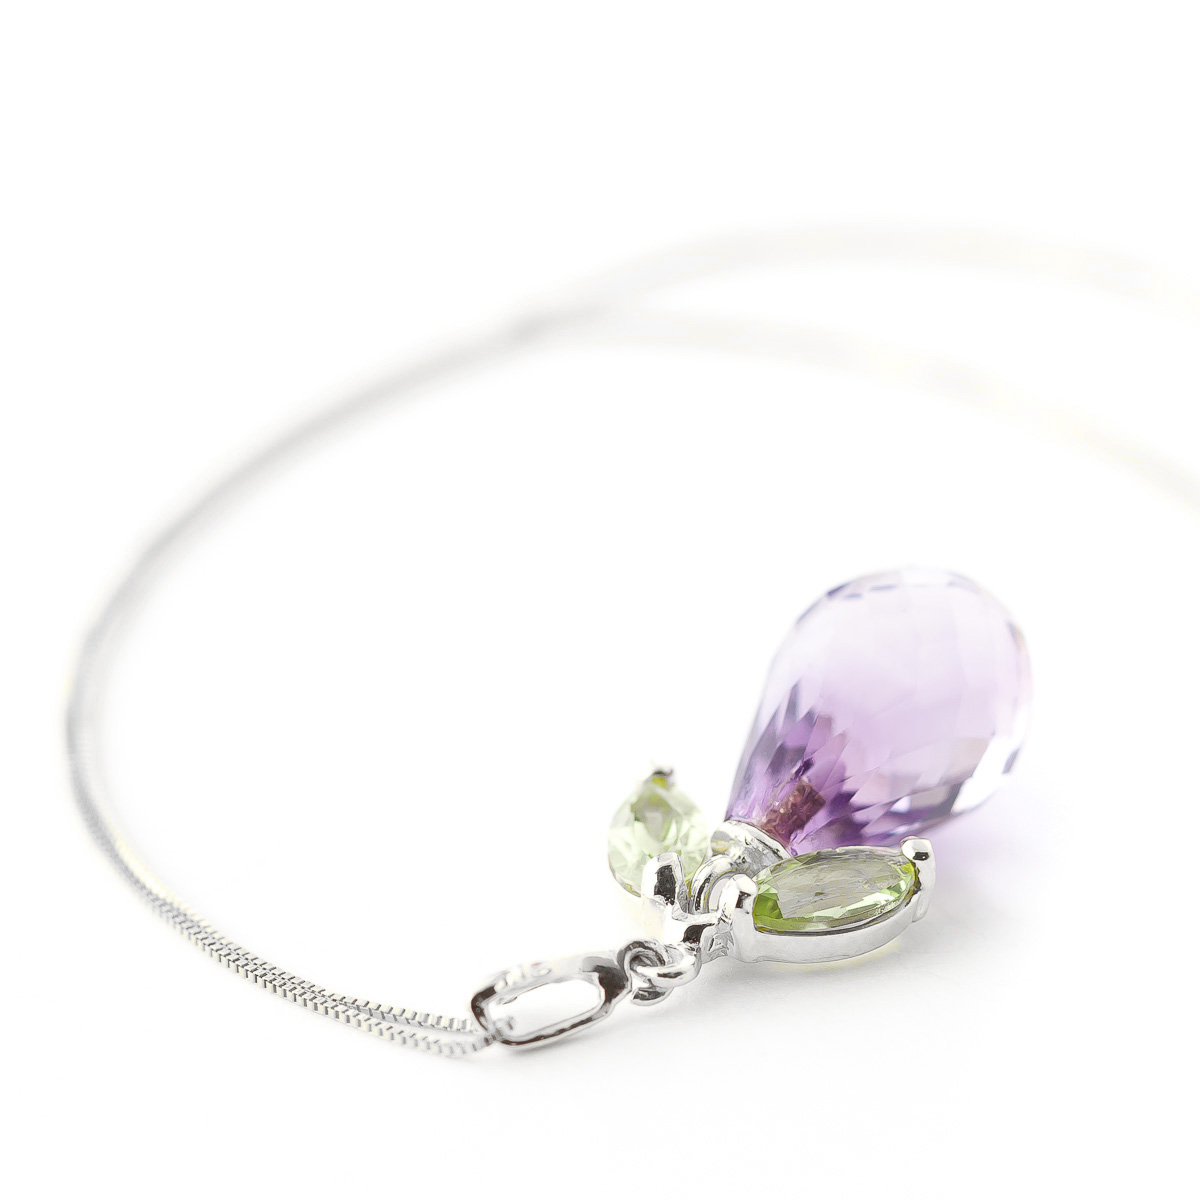 Amethyst and Peridot Pendant Necklace 7.2ctw in 9ct White Gold